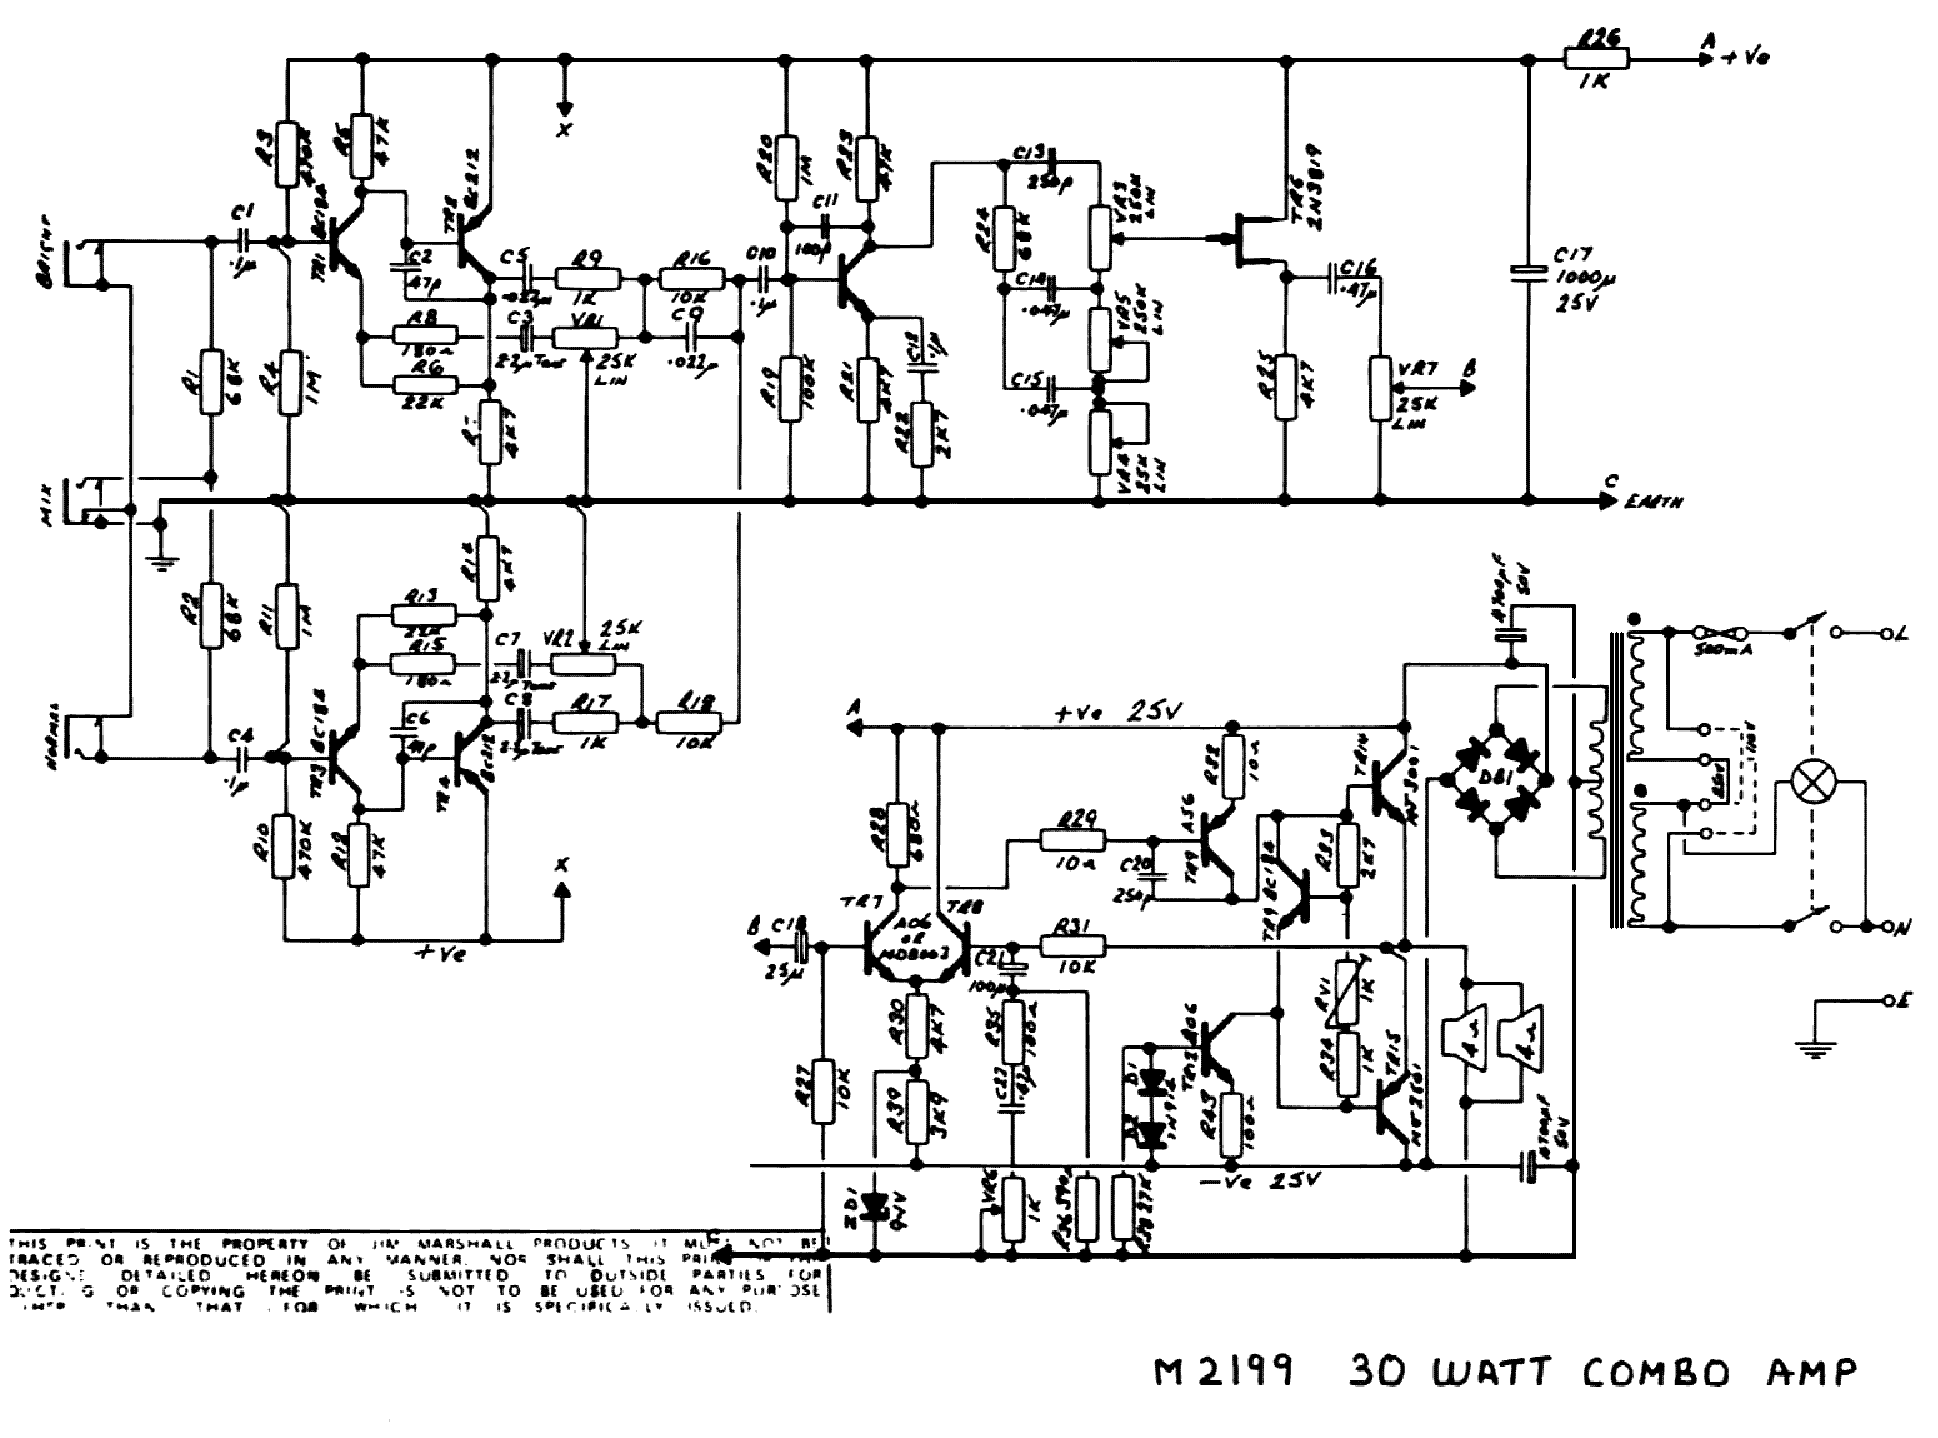 Nvis St940b Wiring Diagram And Schematics Daiwa Schematic Free Download Mg30dfx Page 2